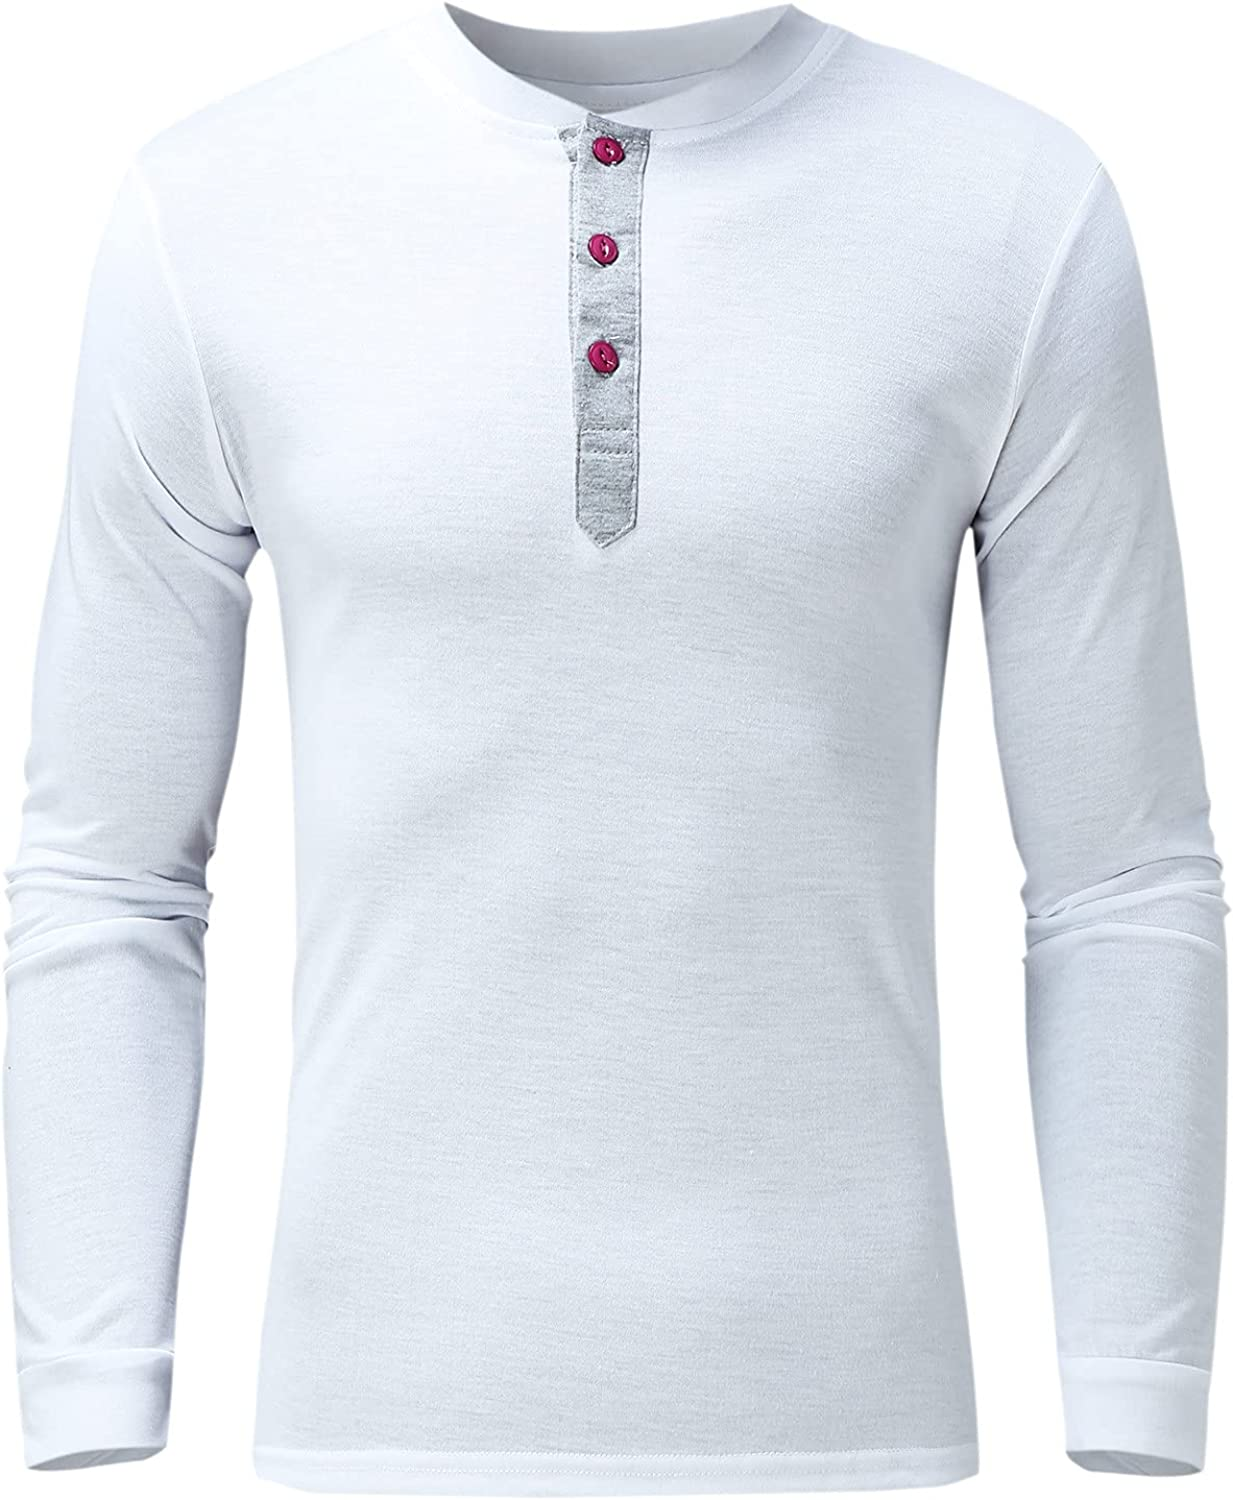 Huangse Men's Muscle T Shirts Stretch Long Sleeve Workout Tee Casual Slim Fit Polo Shirt Button Fishing Outdoor Blouse